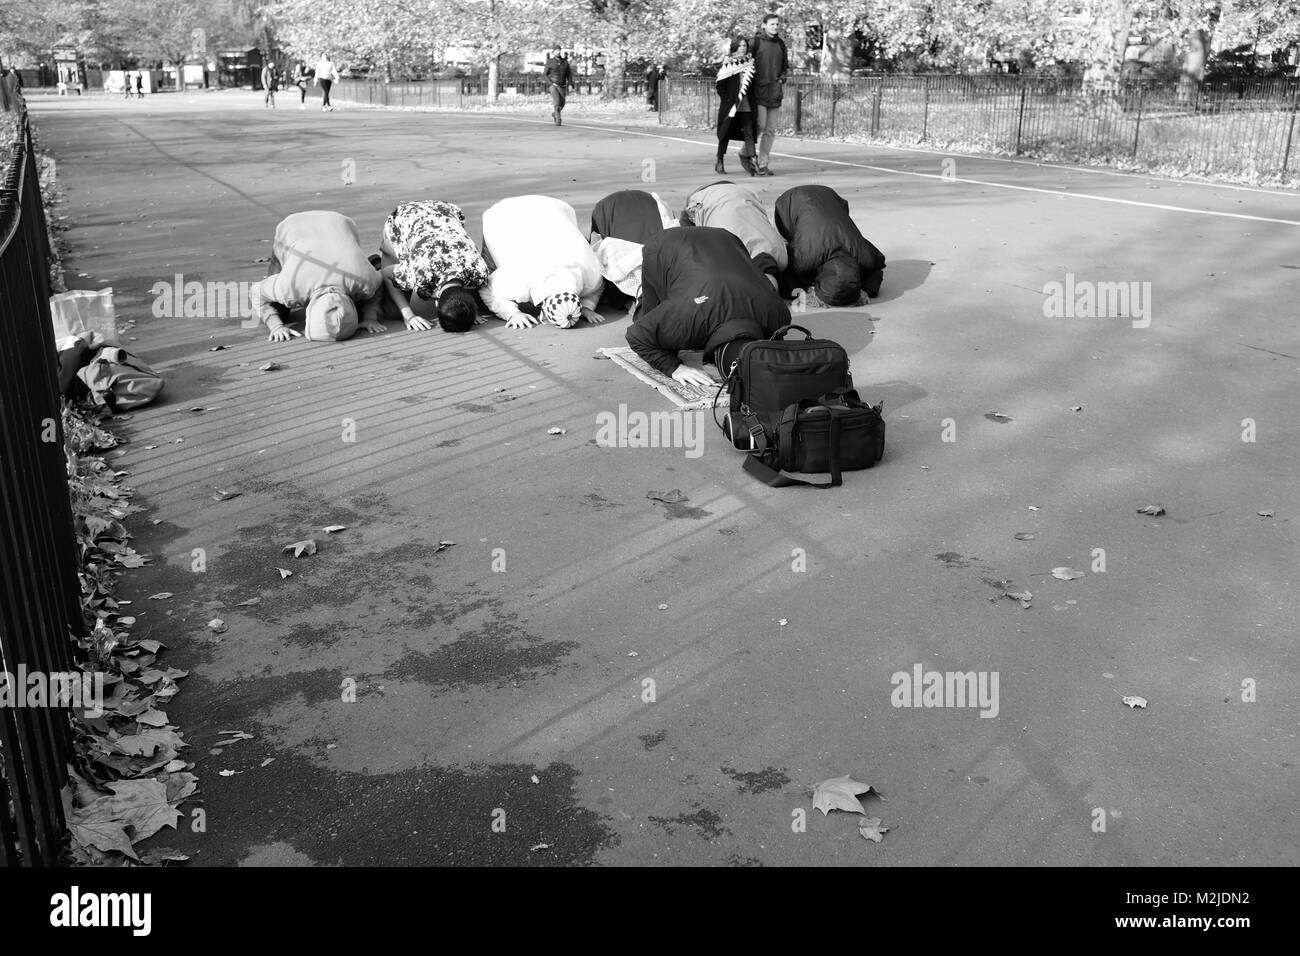 muslim singles in hyde park Watch: uk woman arrested at home after asking police why muslims were  allowed to break the law caldron pool may 29, 2018.